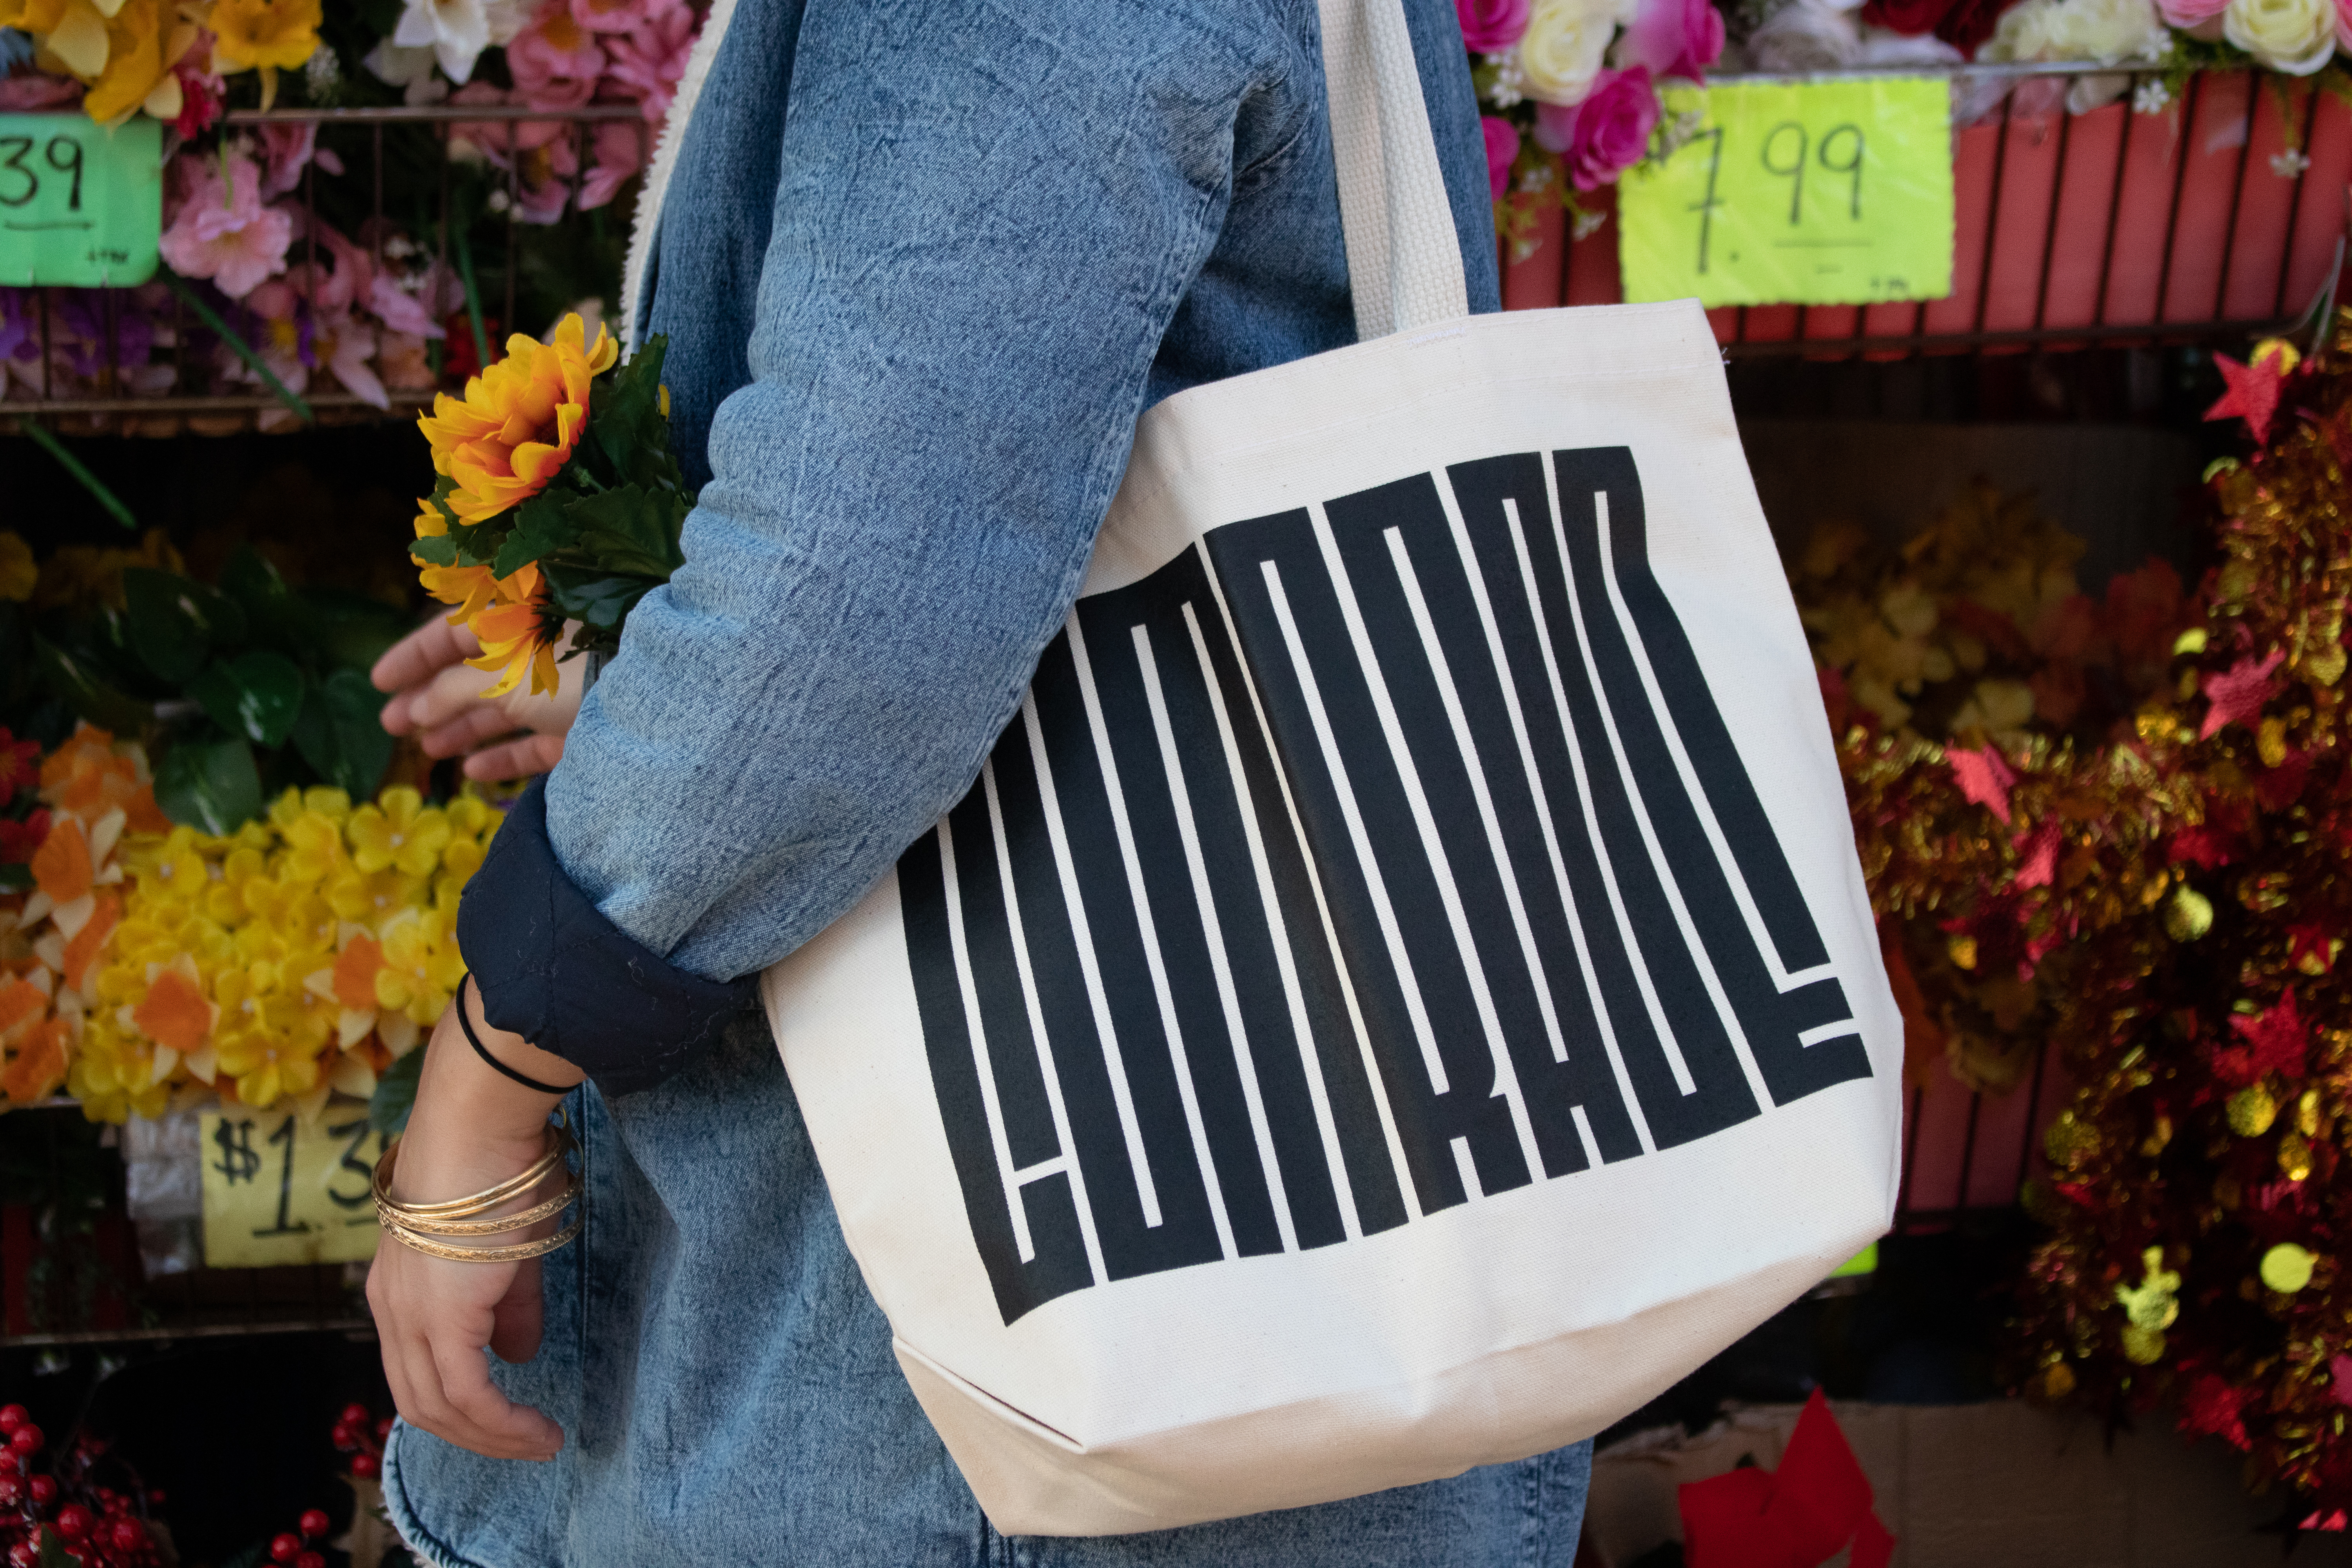 Comrade_tote_in_action_2